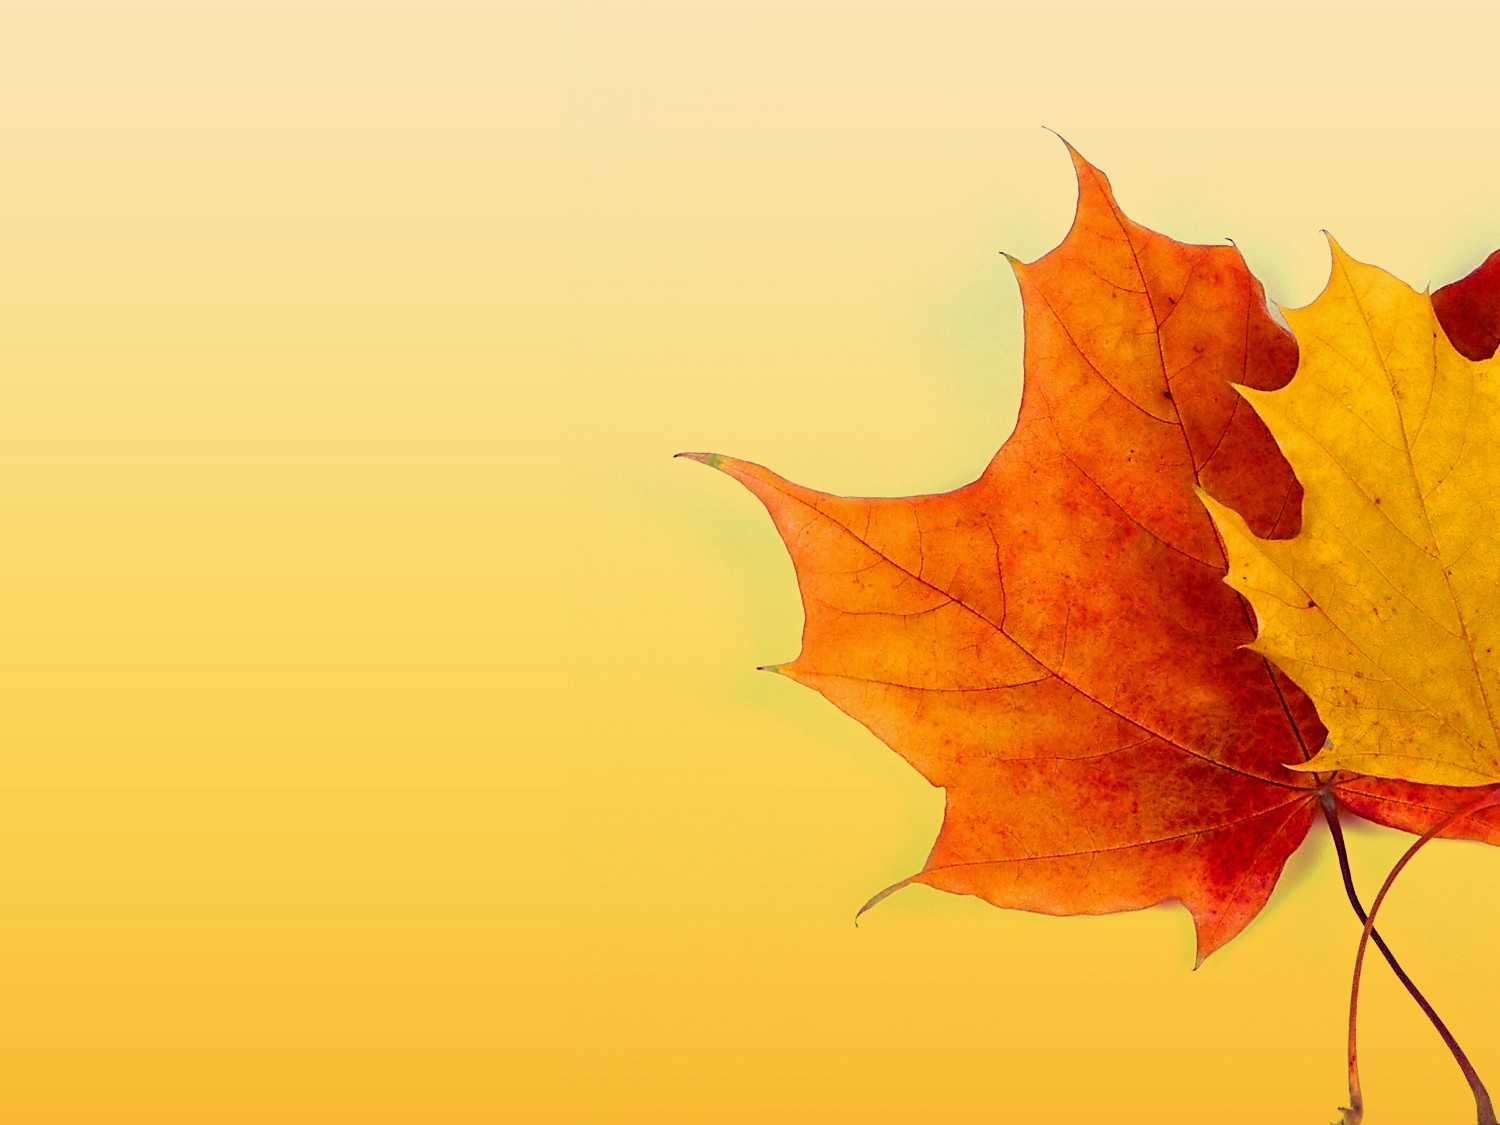 Autumn Ppt Background - Powerpoint Backgrounds For Free With Regard To Free Fall Powerpoint Templates